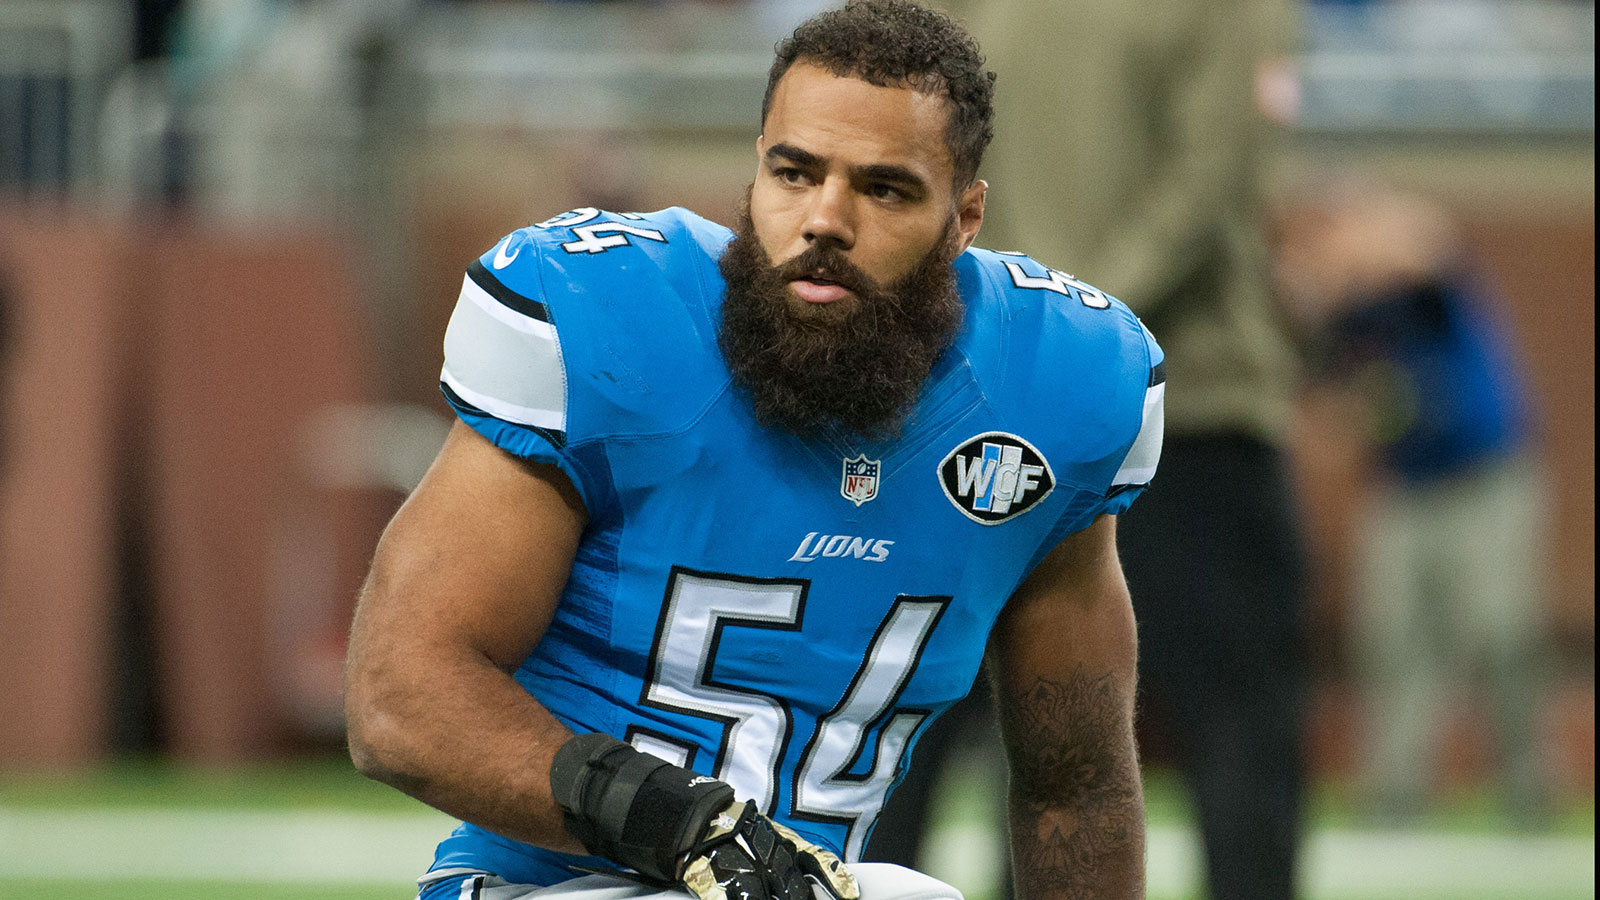 Lions LB Levy needs hip surgery, putting season in doubt